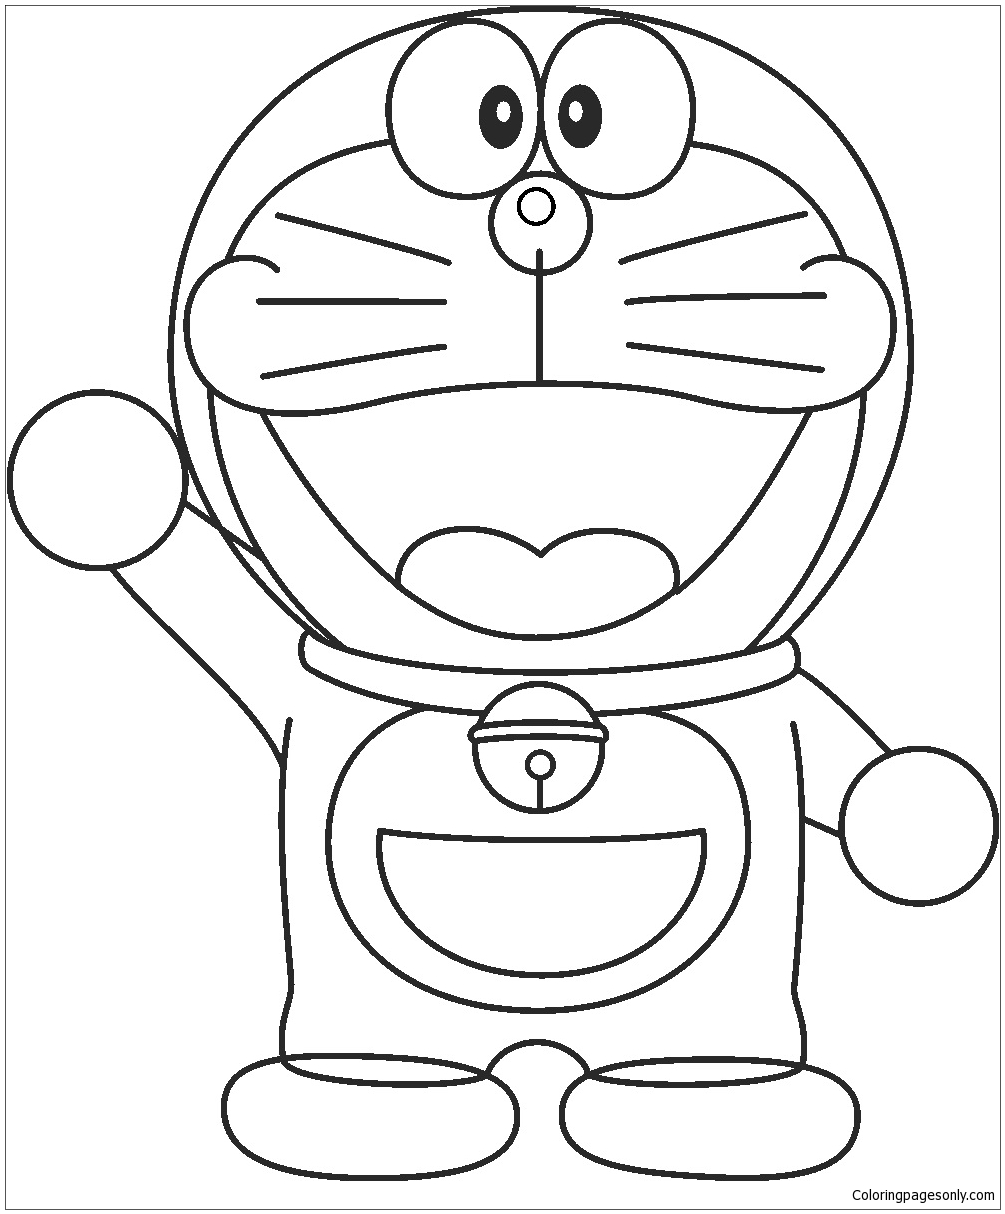 Doraemon Drawing At GetDrawings.com